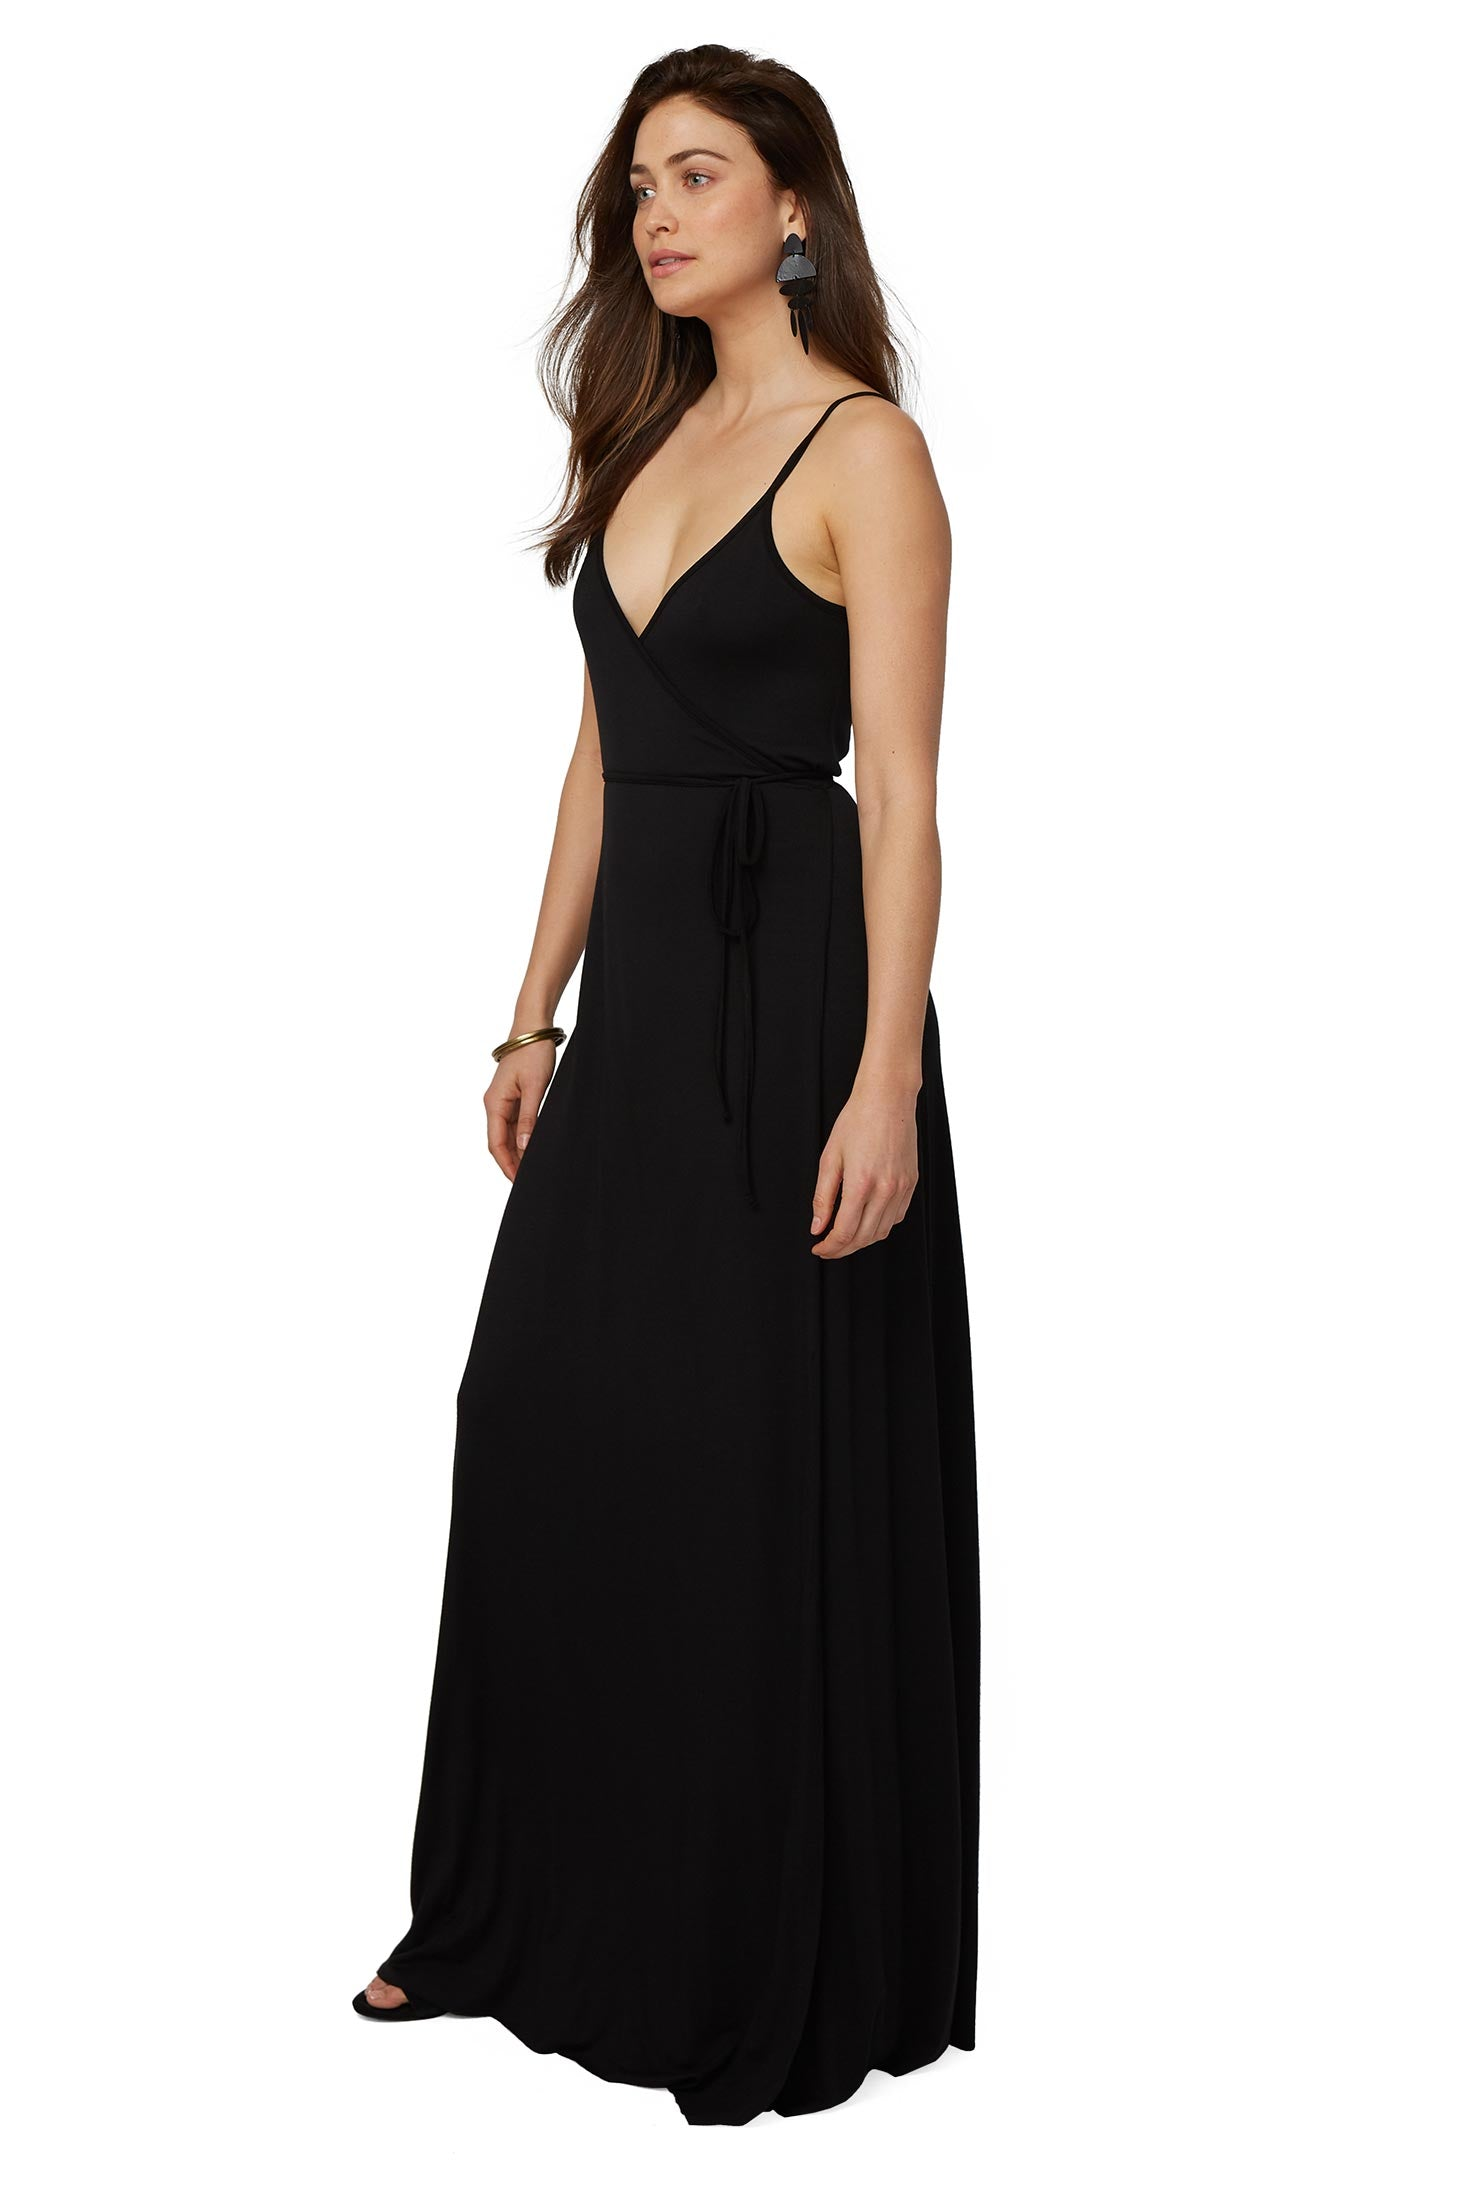 SPAGHETTI WRAP DRESS - BLACK